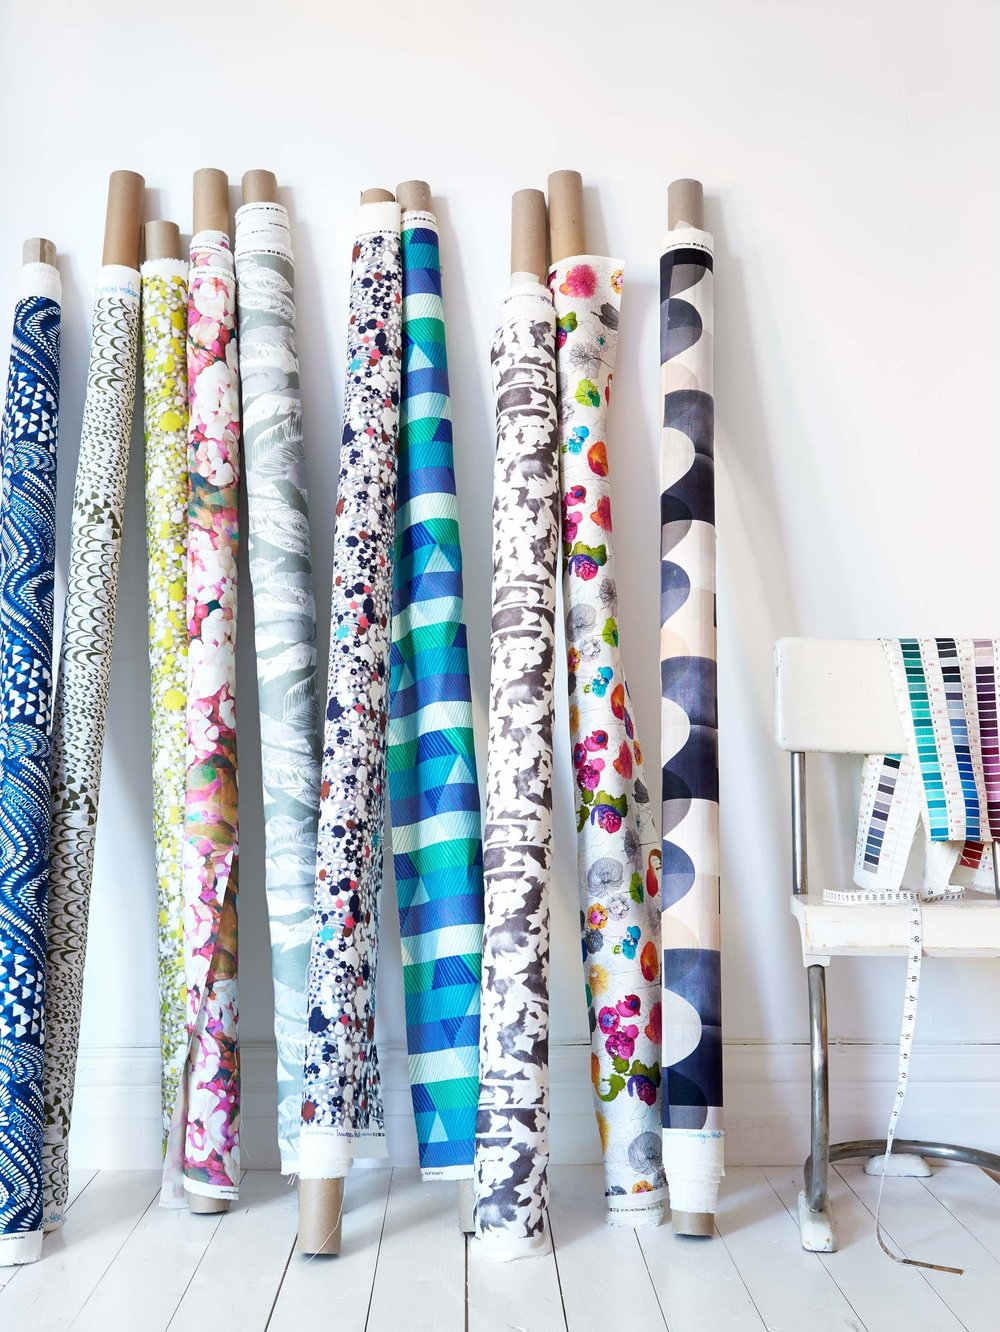 Imogen-Heath-Fabric-Rolls.jpg